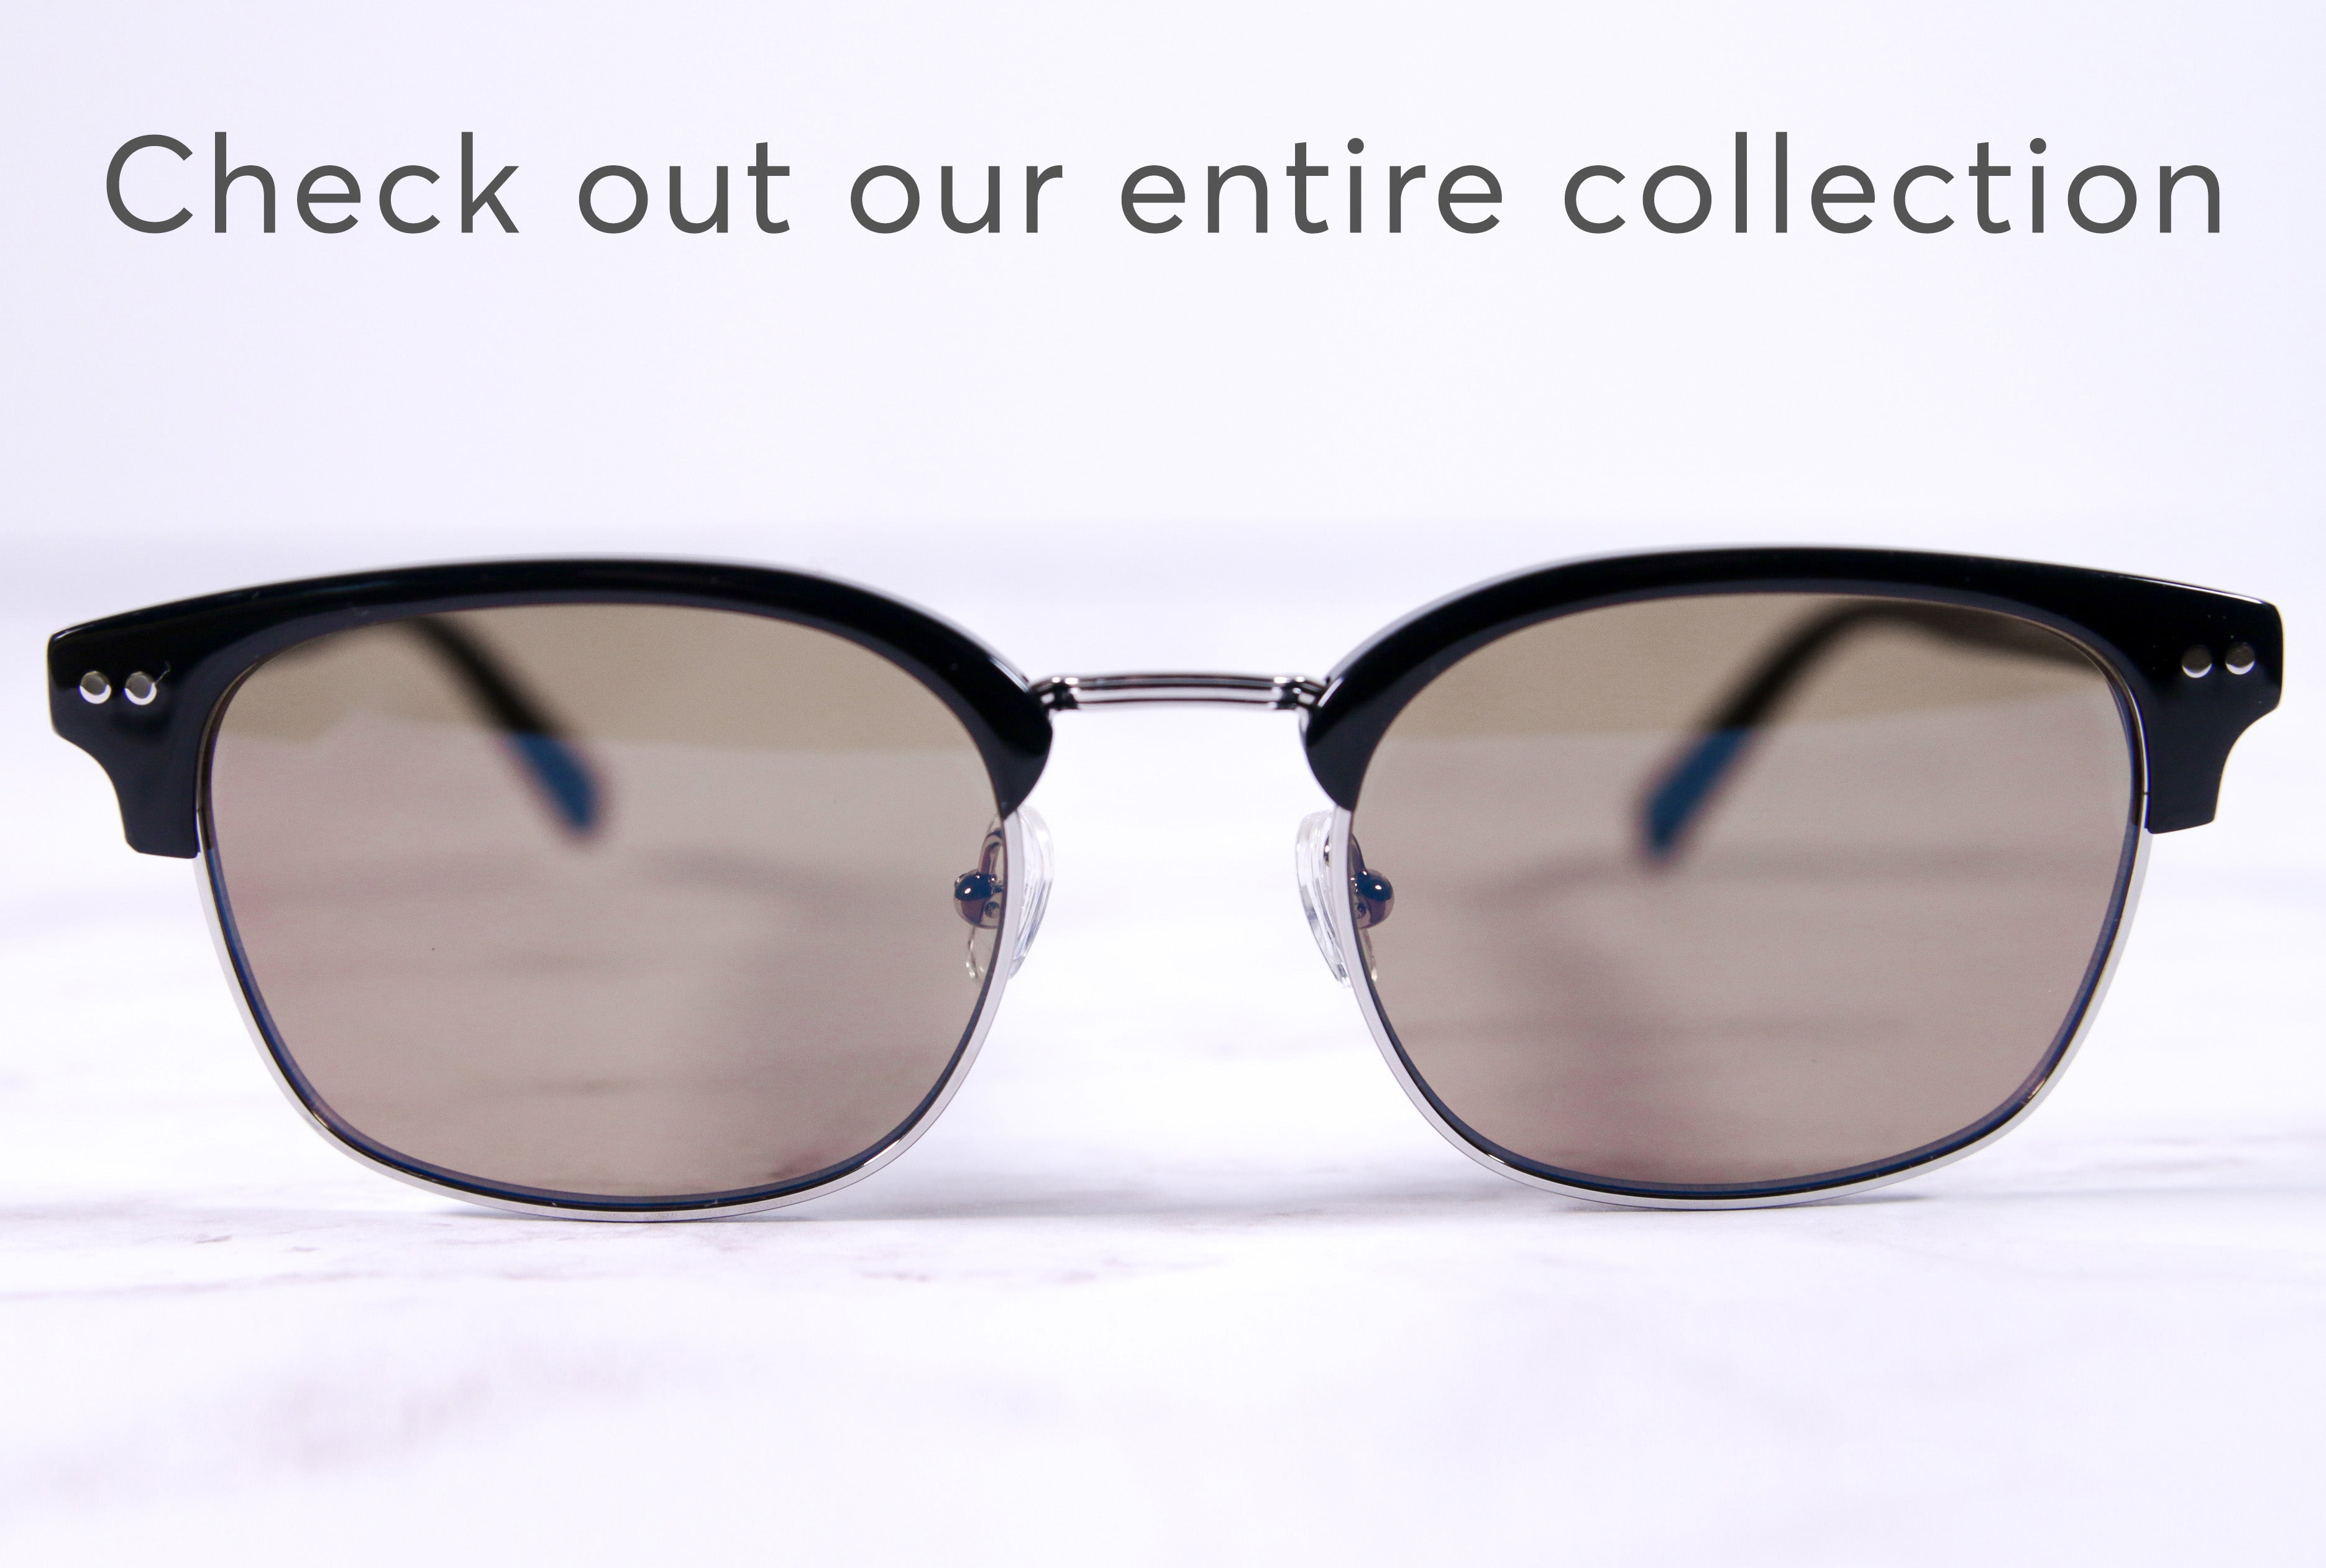 Check out our entire collection